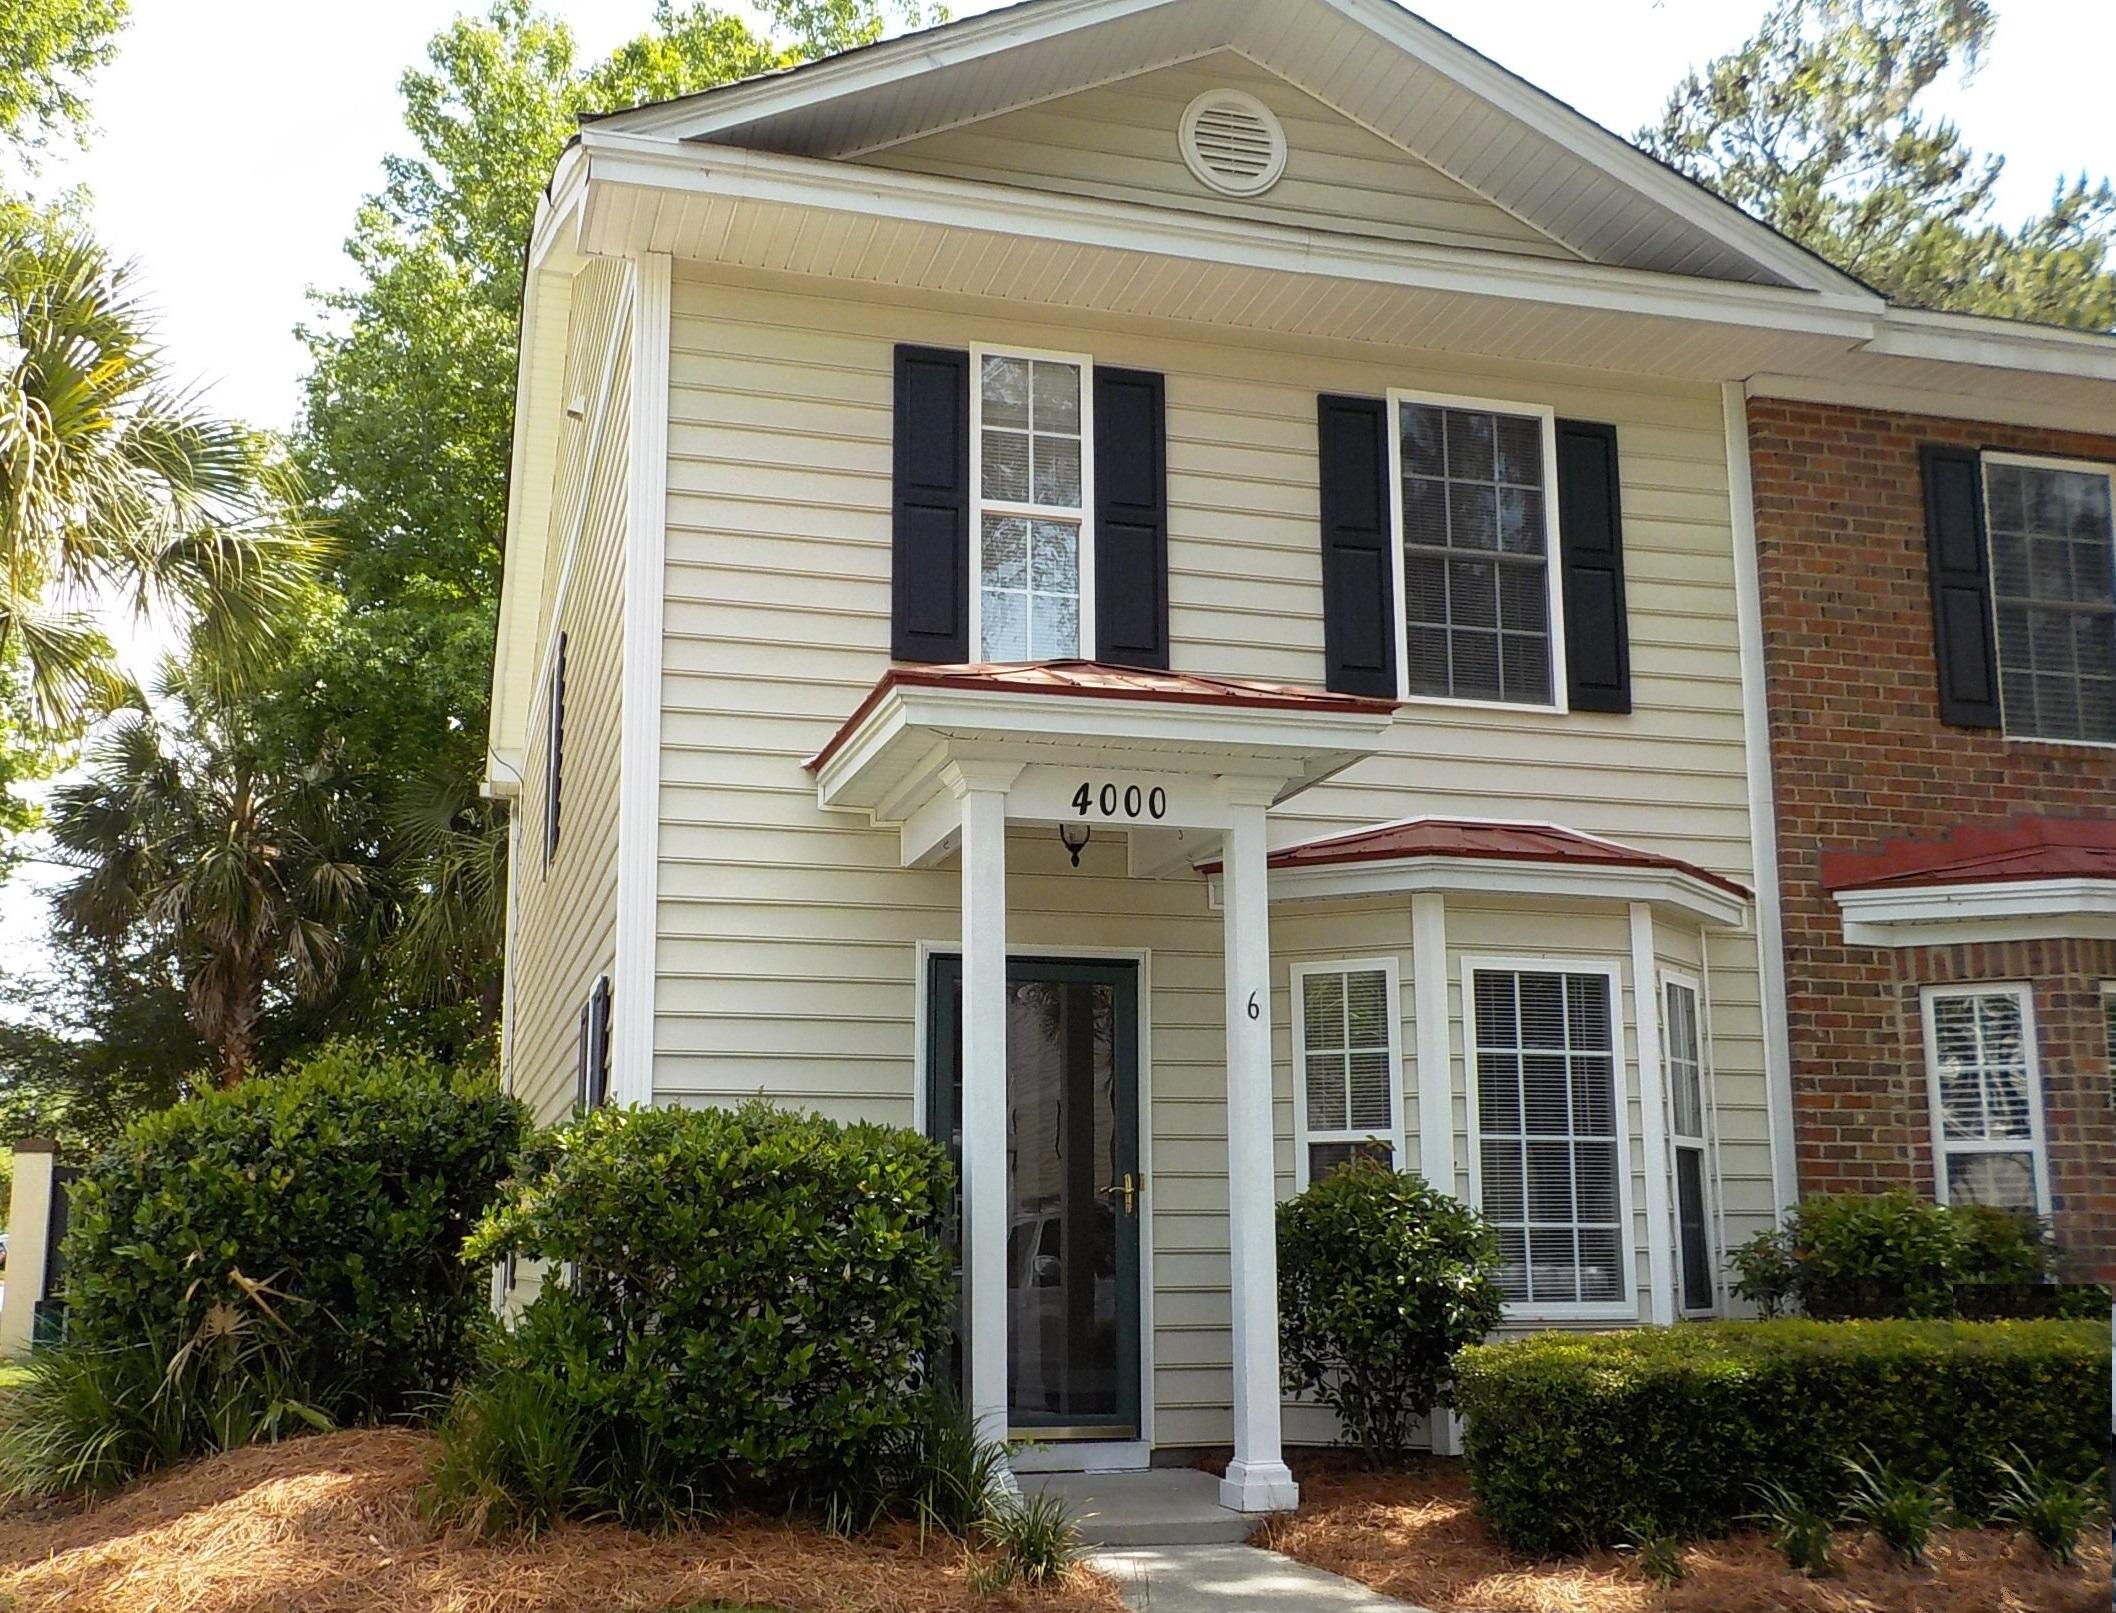 Radcliffe Place Homes For Sale - 4000 Radcliffe Place, Charleston, SC - 2